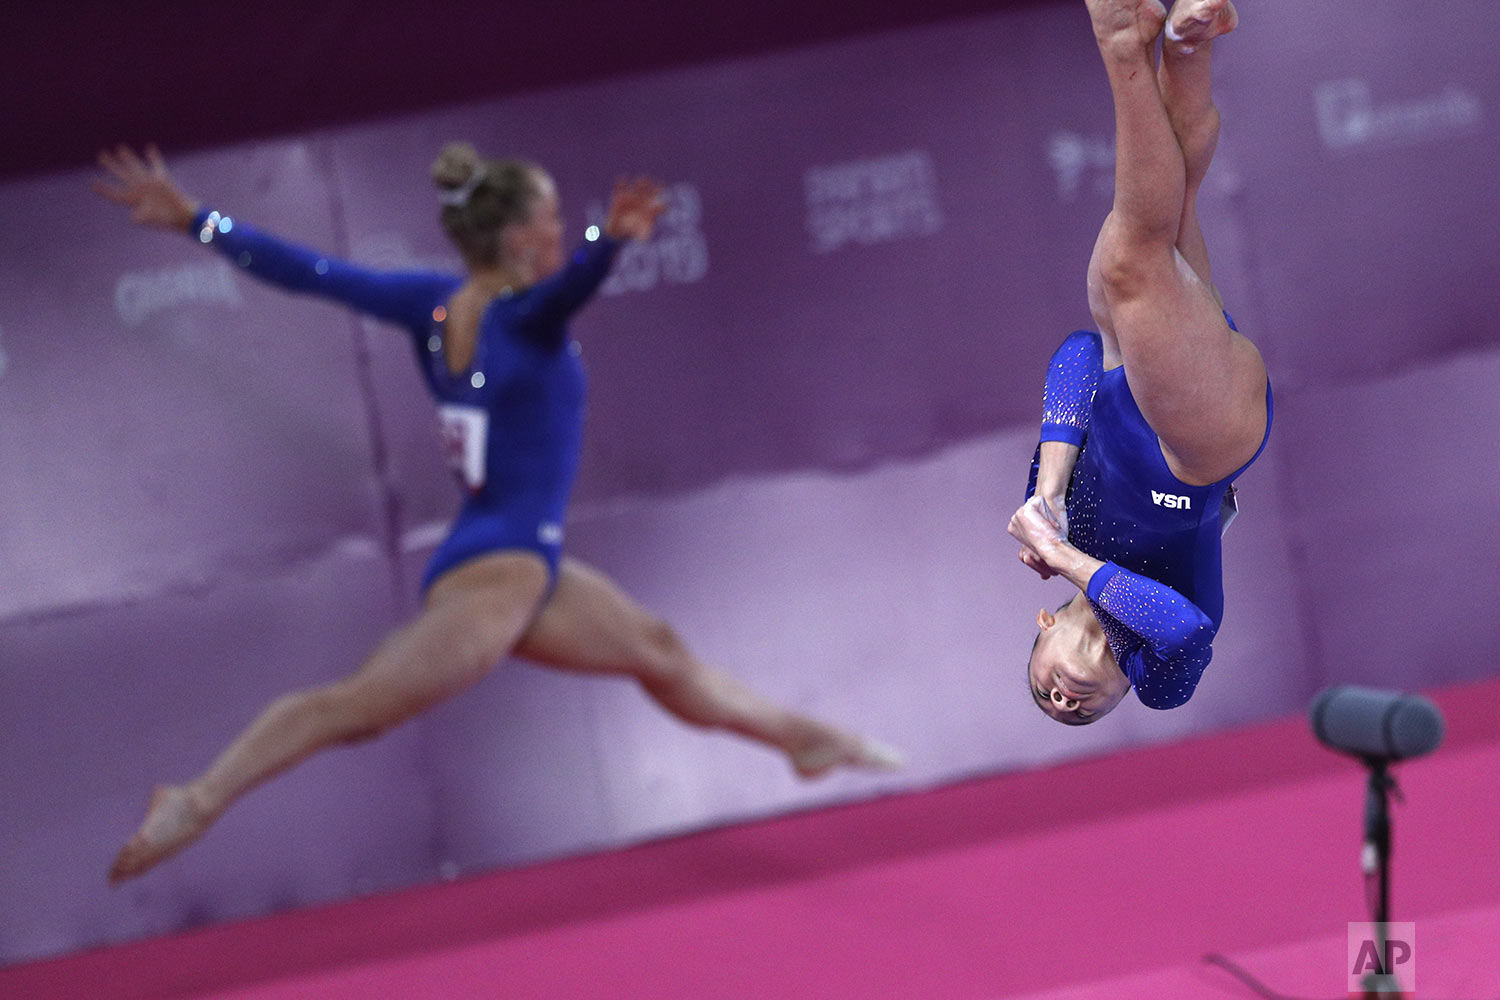 Leanne Wong, right, and Riley McCusker of the U.S. warm up to compete on beam in the women's gymnastics qualification and team final at the Pan American Games in Lima, Peru, Saturday, July 27, 2019. (AP Photo/Rebecca Blackwell)